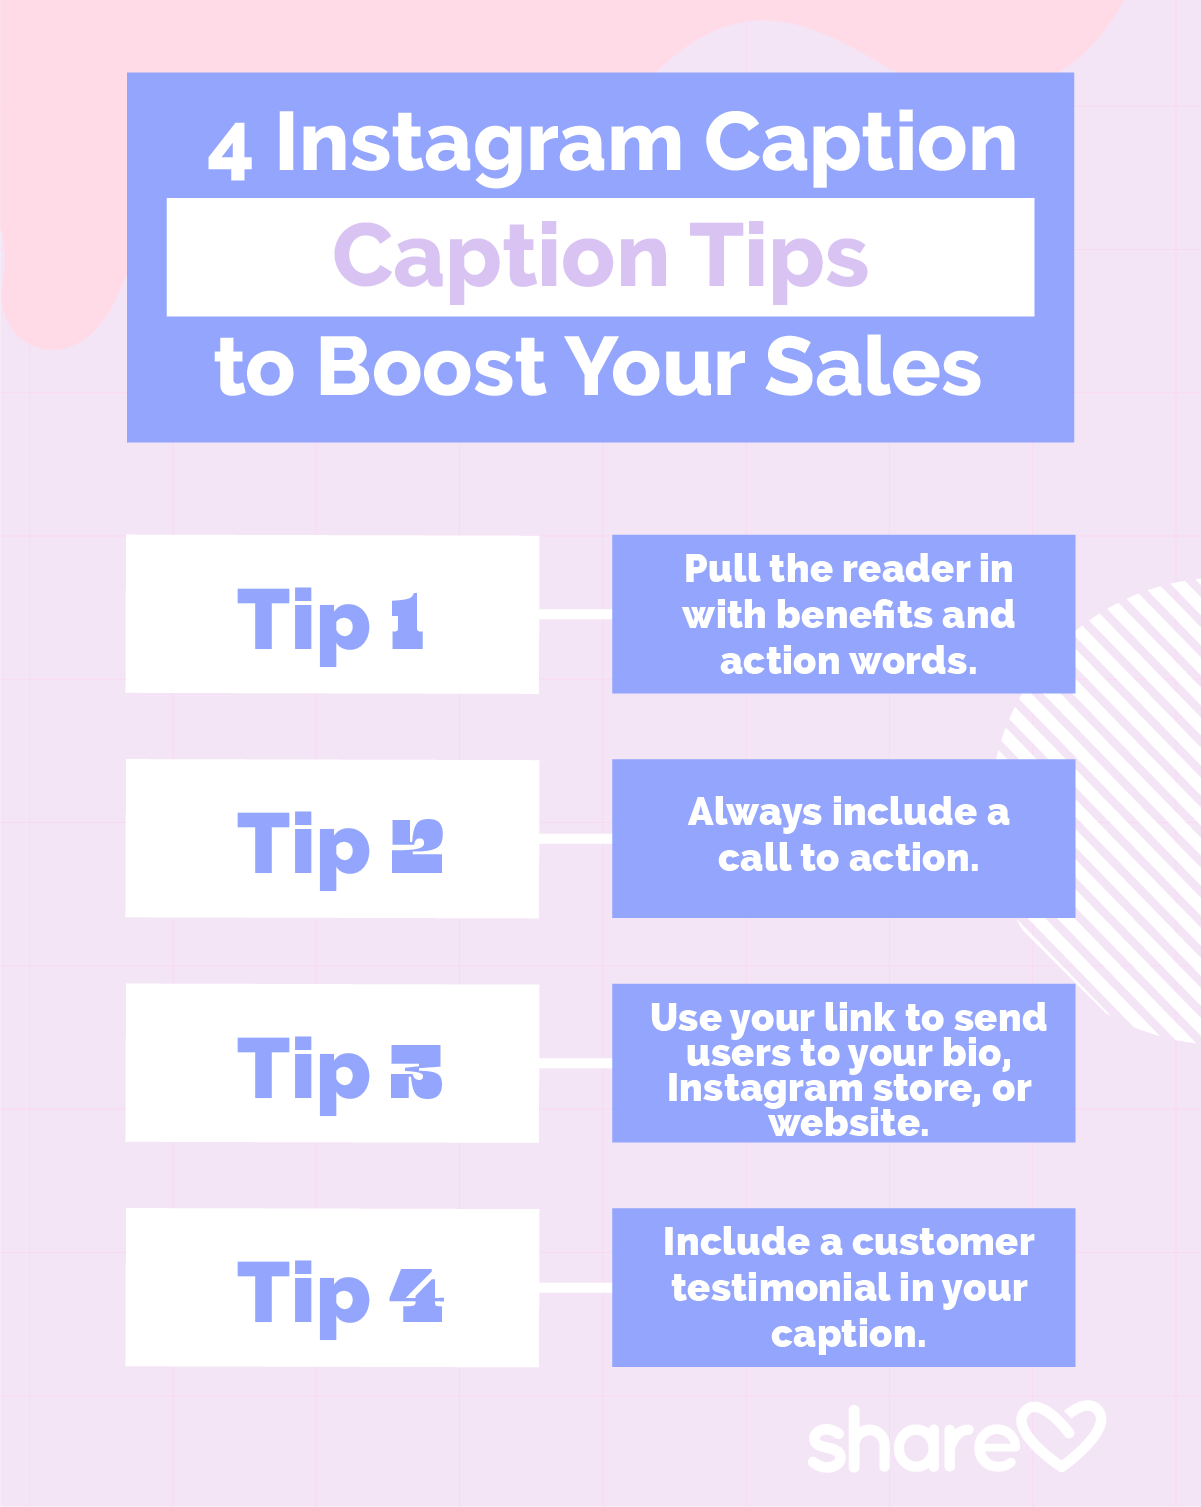 4 Instagram Caption Tips to boost your sales